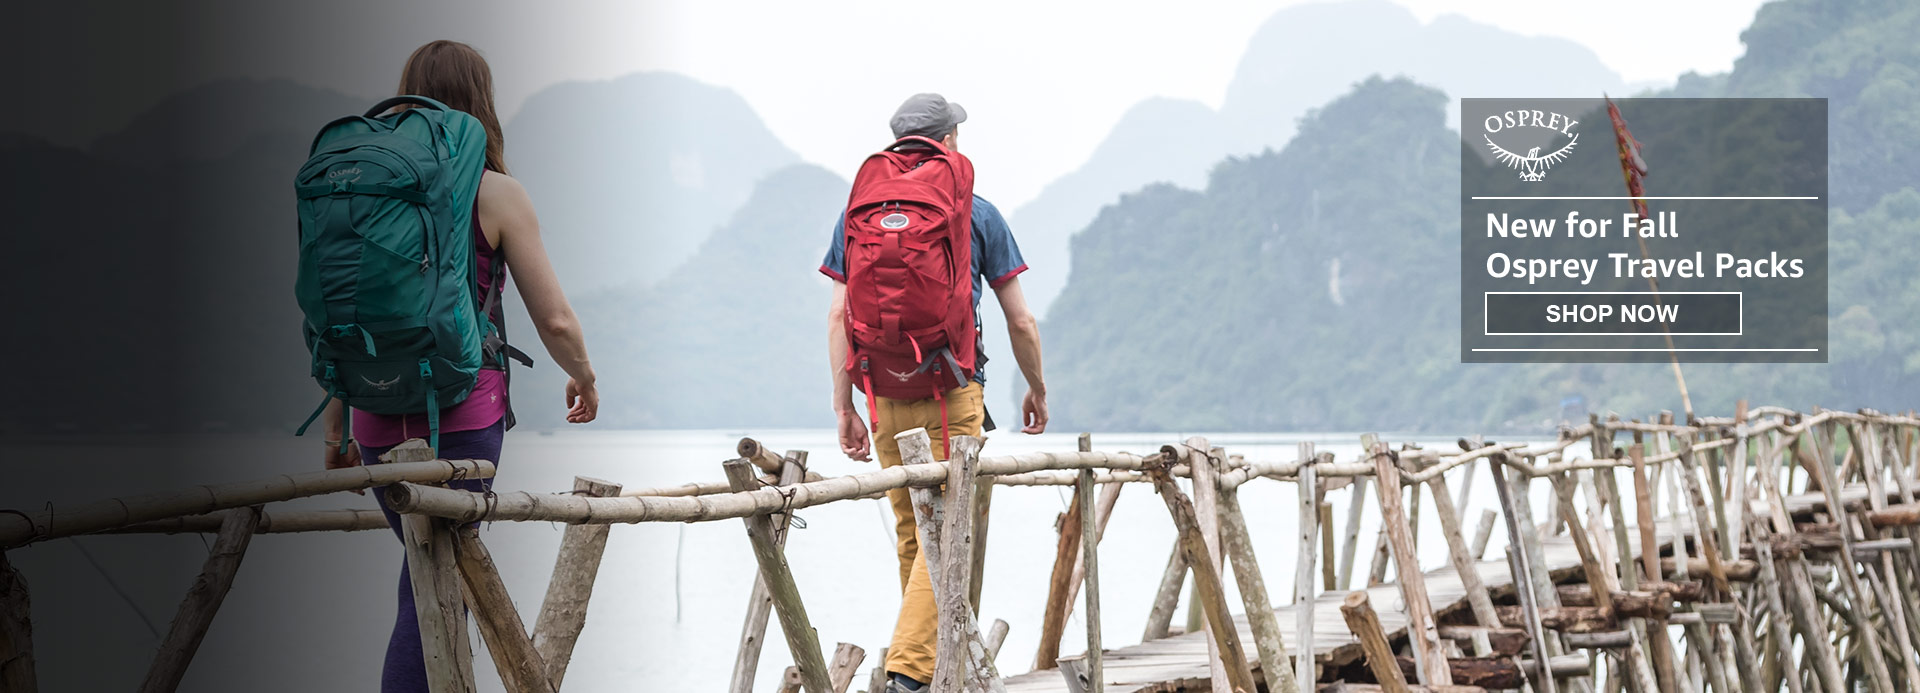 Osprey Packs in Outdoor Recreation on Amazon.com